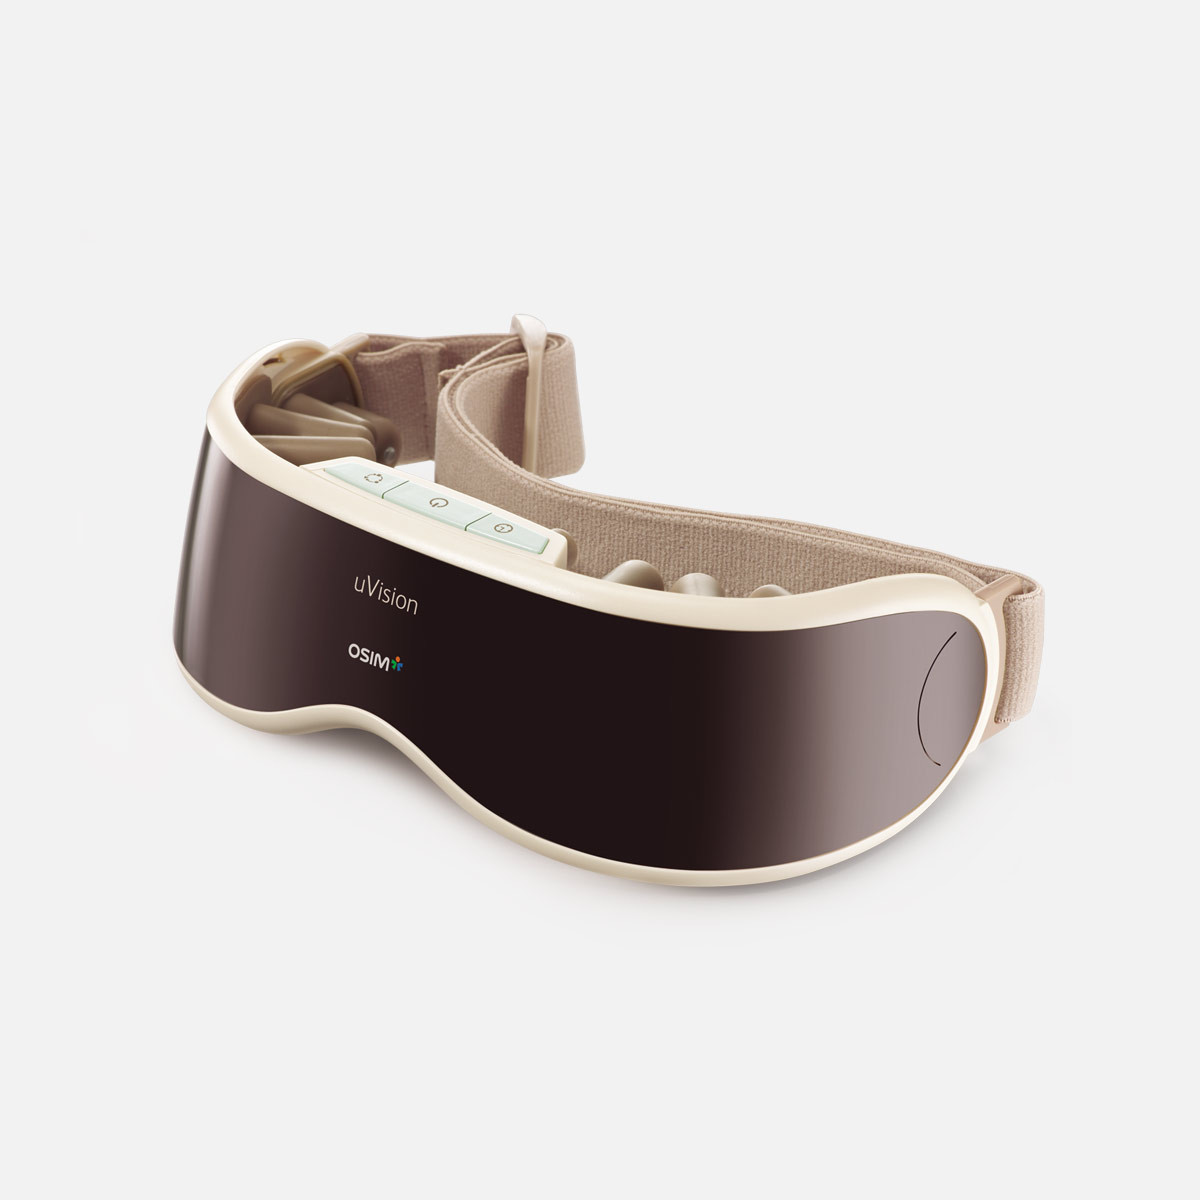 uVision Eye Massager